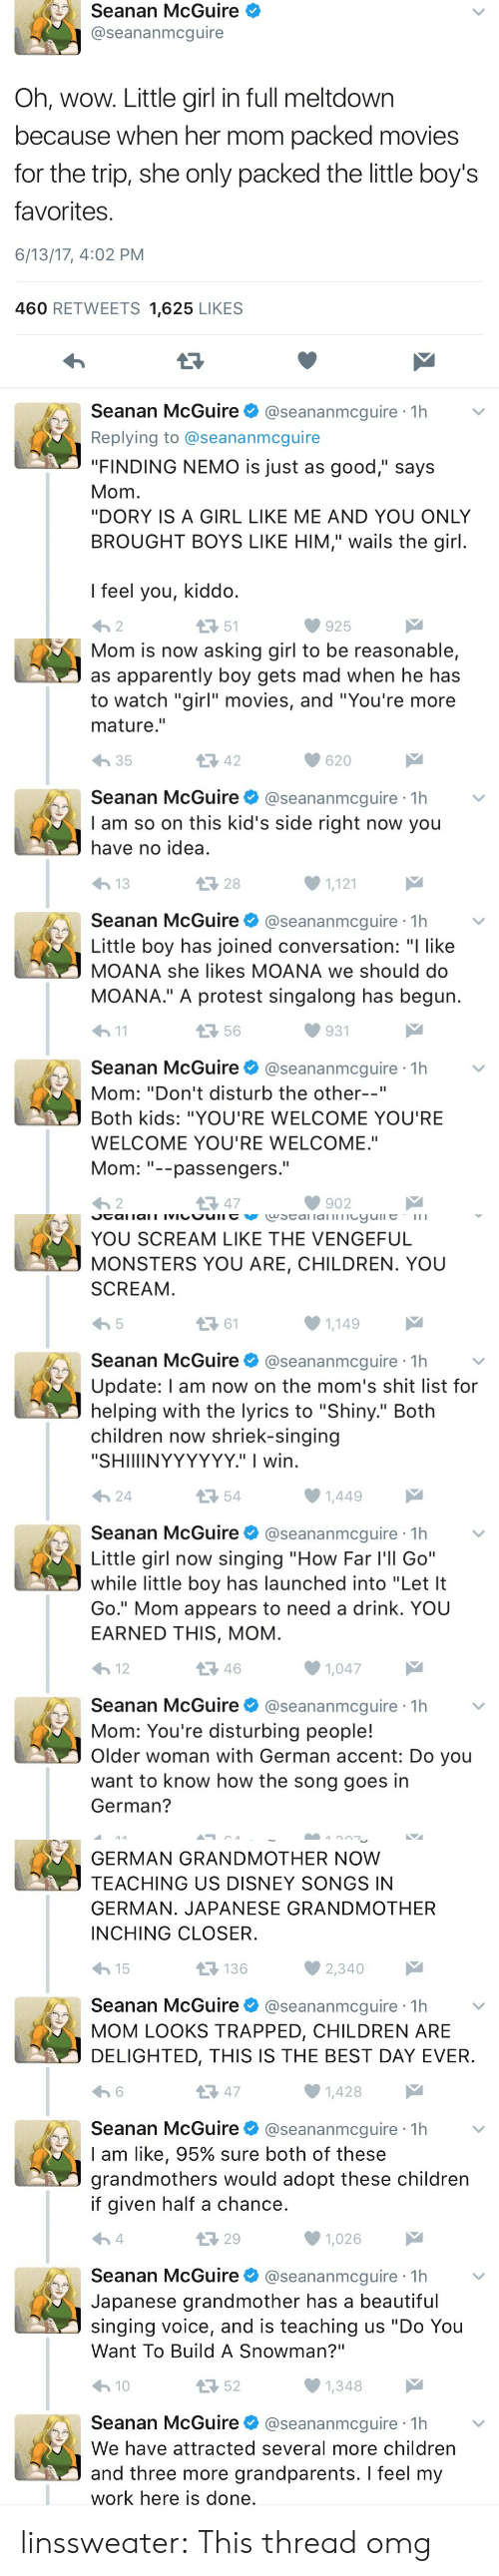 """Proteste: Seanan McGuire  @seananmcguire  Oh, wow. Little girl in full meltdown  because when her mom packed movies  for the trip, she only packed the little boy's  favorites  6/13/17, 4:02 PM  460 RETWEETS 1,625 LIKES  Seanan McGuire@seananmcguire 1h  Replying to @seananmcguire  """"FINDING NEMO is just as good,"""" says  Mom  """"DORY IS A GIRL LIKE ME AND YOU ONLY  BROUGHT BOYS LIKE HIM,"""" wails the girl  I feel you, kiddo  わ2  51  925   Mom is now asking girl to be reasonable,  as apparently boy gets mad when he has  to watch """"girl"""" movies, and """"You're more  mature.""""  わ35  42  620  Seanan McGuire@seananmcguire 1h  I am so on this kid's side right now you  have no idea  28  1,121  Seanan McGuire@seananmcguire 1h  Little boy has joined conversation: """"I like  MOANA she likes MOANA we should do  MOANA."""" A protest singalong has begun  h1  56  931  Seanan McGuire@seananmcguire 1h  Mom: """"Don't disturb the other--""""  Both kids: """"YOU'RE WELCOME YOU'RE  WELCOME YOU'RE WELCOME.""""  Mom--passengers.  わ2  다 47  902   YOU SCREAM LIKE THE VENGEFUL  MONSTERS YOU ARE, CHILDREN. YOU  SCREAM  ロ61  1,149  Seanan McGuire@seananmcguire 1h  Update: l am now on the mom's shit list for  helping with the lyrics to """"Shiny."""" Both  children now shriek-singing  """"SHIIIINYYYYYY."""" I wirn  24  54  Seanan McGuireネ@seananmcgure·1h  Little girl now singing """"How Far l'll Go""""  while little boy has launched into """"Let It  Go."""" Mom appears to need a drink. YOU  EARNED THIS, MOM  12  46  1,047  Seanan McGuire@seananmcguire 1h  Mom: You're disturbing people!  Older woman with German accent: Do you  want to know how the song goes in  German?   GERMAN GRANDMOTHER NOW  TEACHING US DISNEY SONGS IN  GERMAN. JAPANESE GRANDMOTHER  INCHING CLOSER  15  136  Seanan McGuire@seananmcguire 1h  MOM LOOKS TRAPPED, CHILDREN ARE  DELIGHTED, THIS IS THE BEST DAY EVER  13 47  1,428  Seanan McGuire@seananmcguire 1h  I am like, 95% sure both of these  grandmothers would adopt these children  if given half a chance  29  1,026  Seanan McGui"""